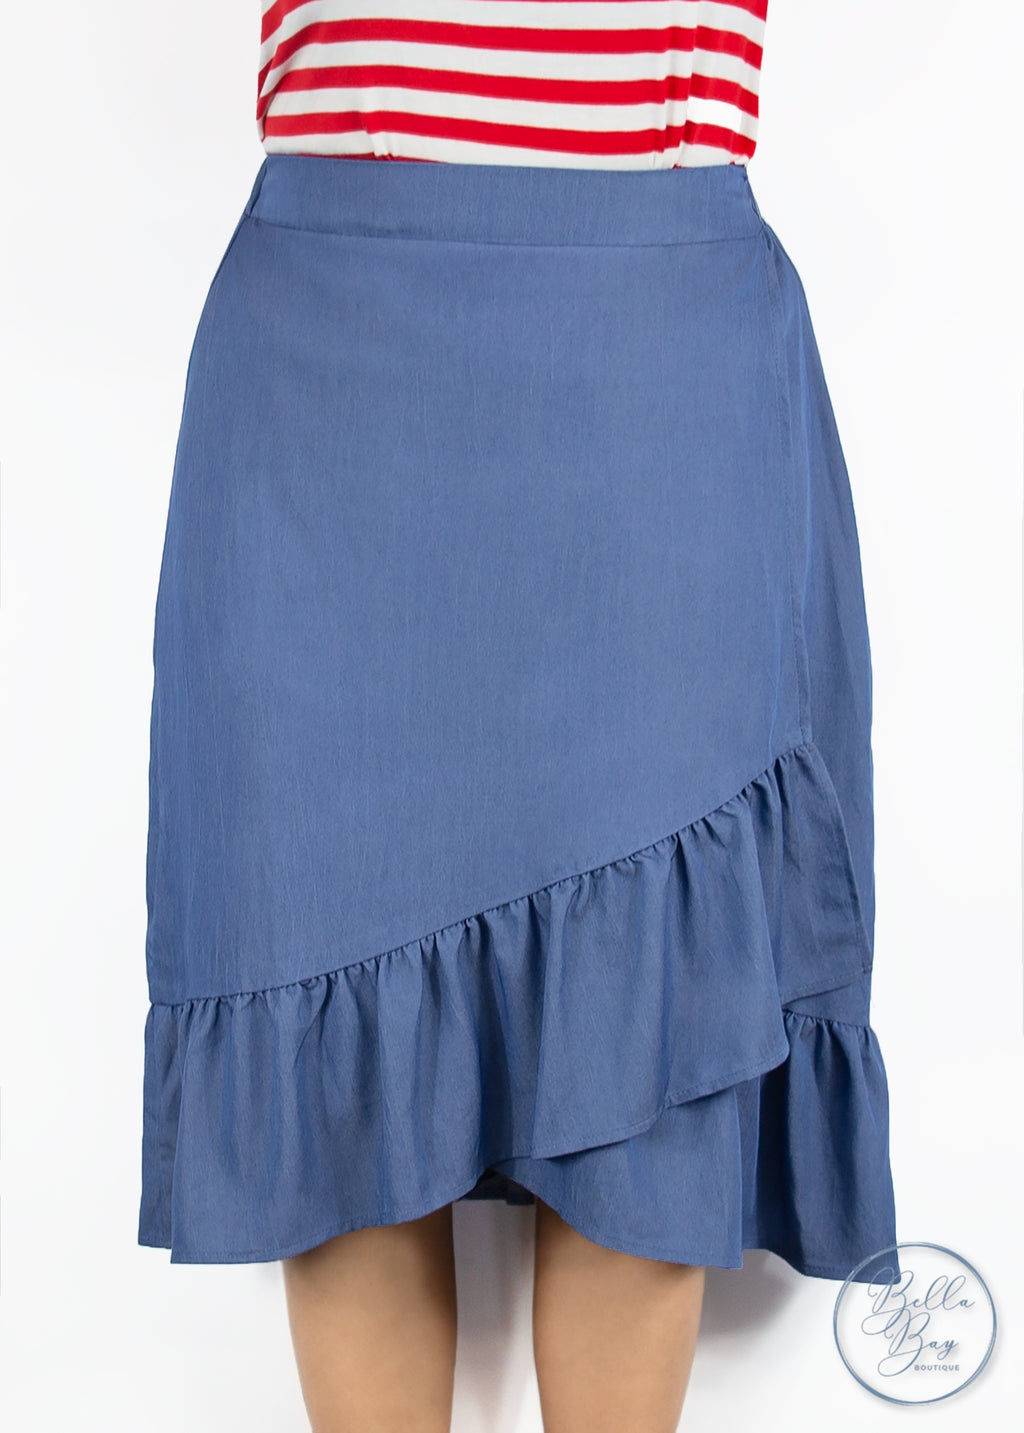 Paisley Raye Kerria Skirt- Denim (1X) - Paisley Raye with Bella Bay Boutique, shop now at  https://shopbellabay.com/ or locally in Newport Oregon